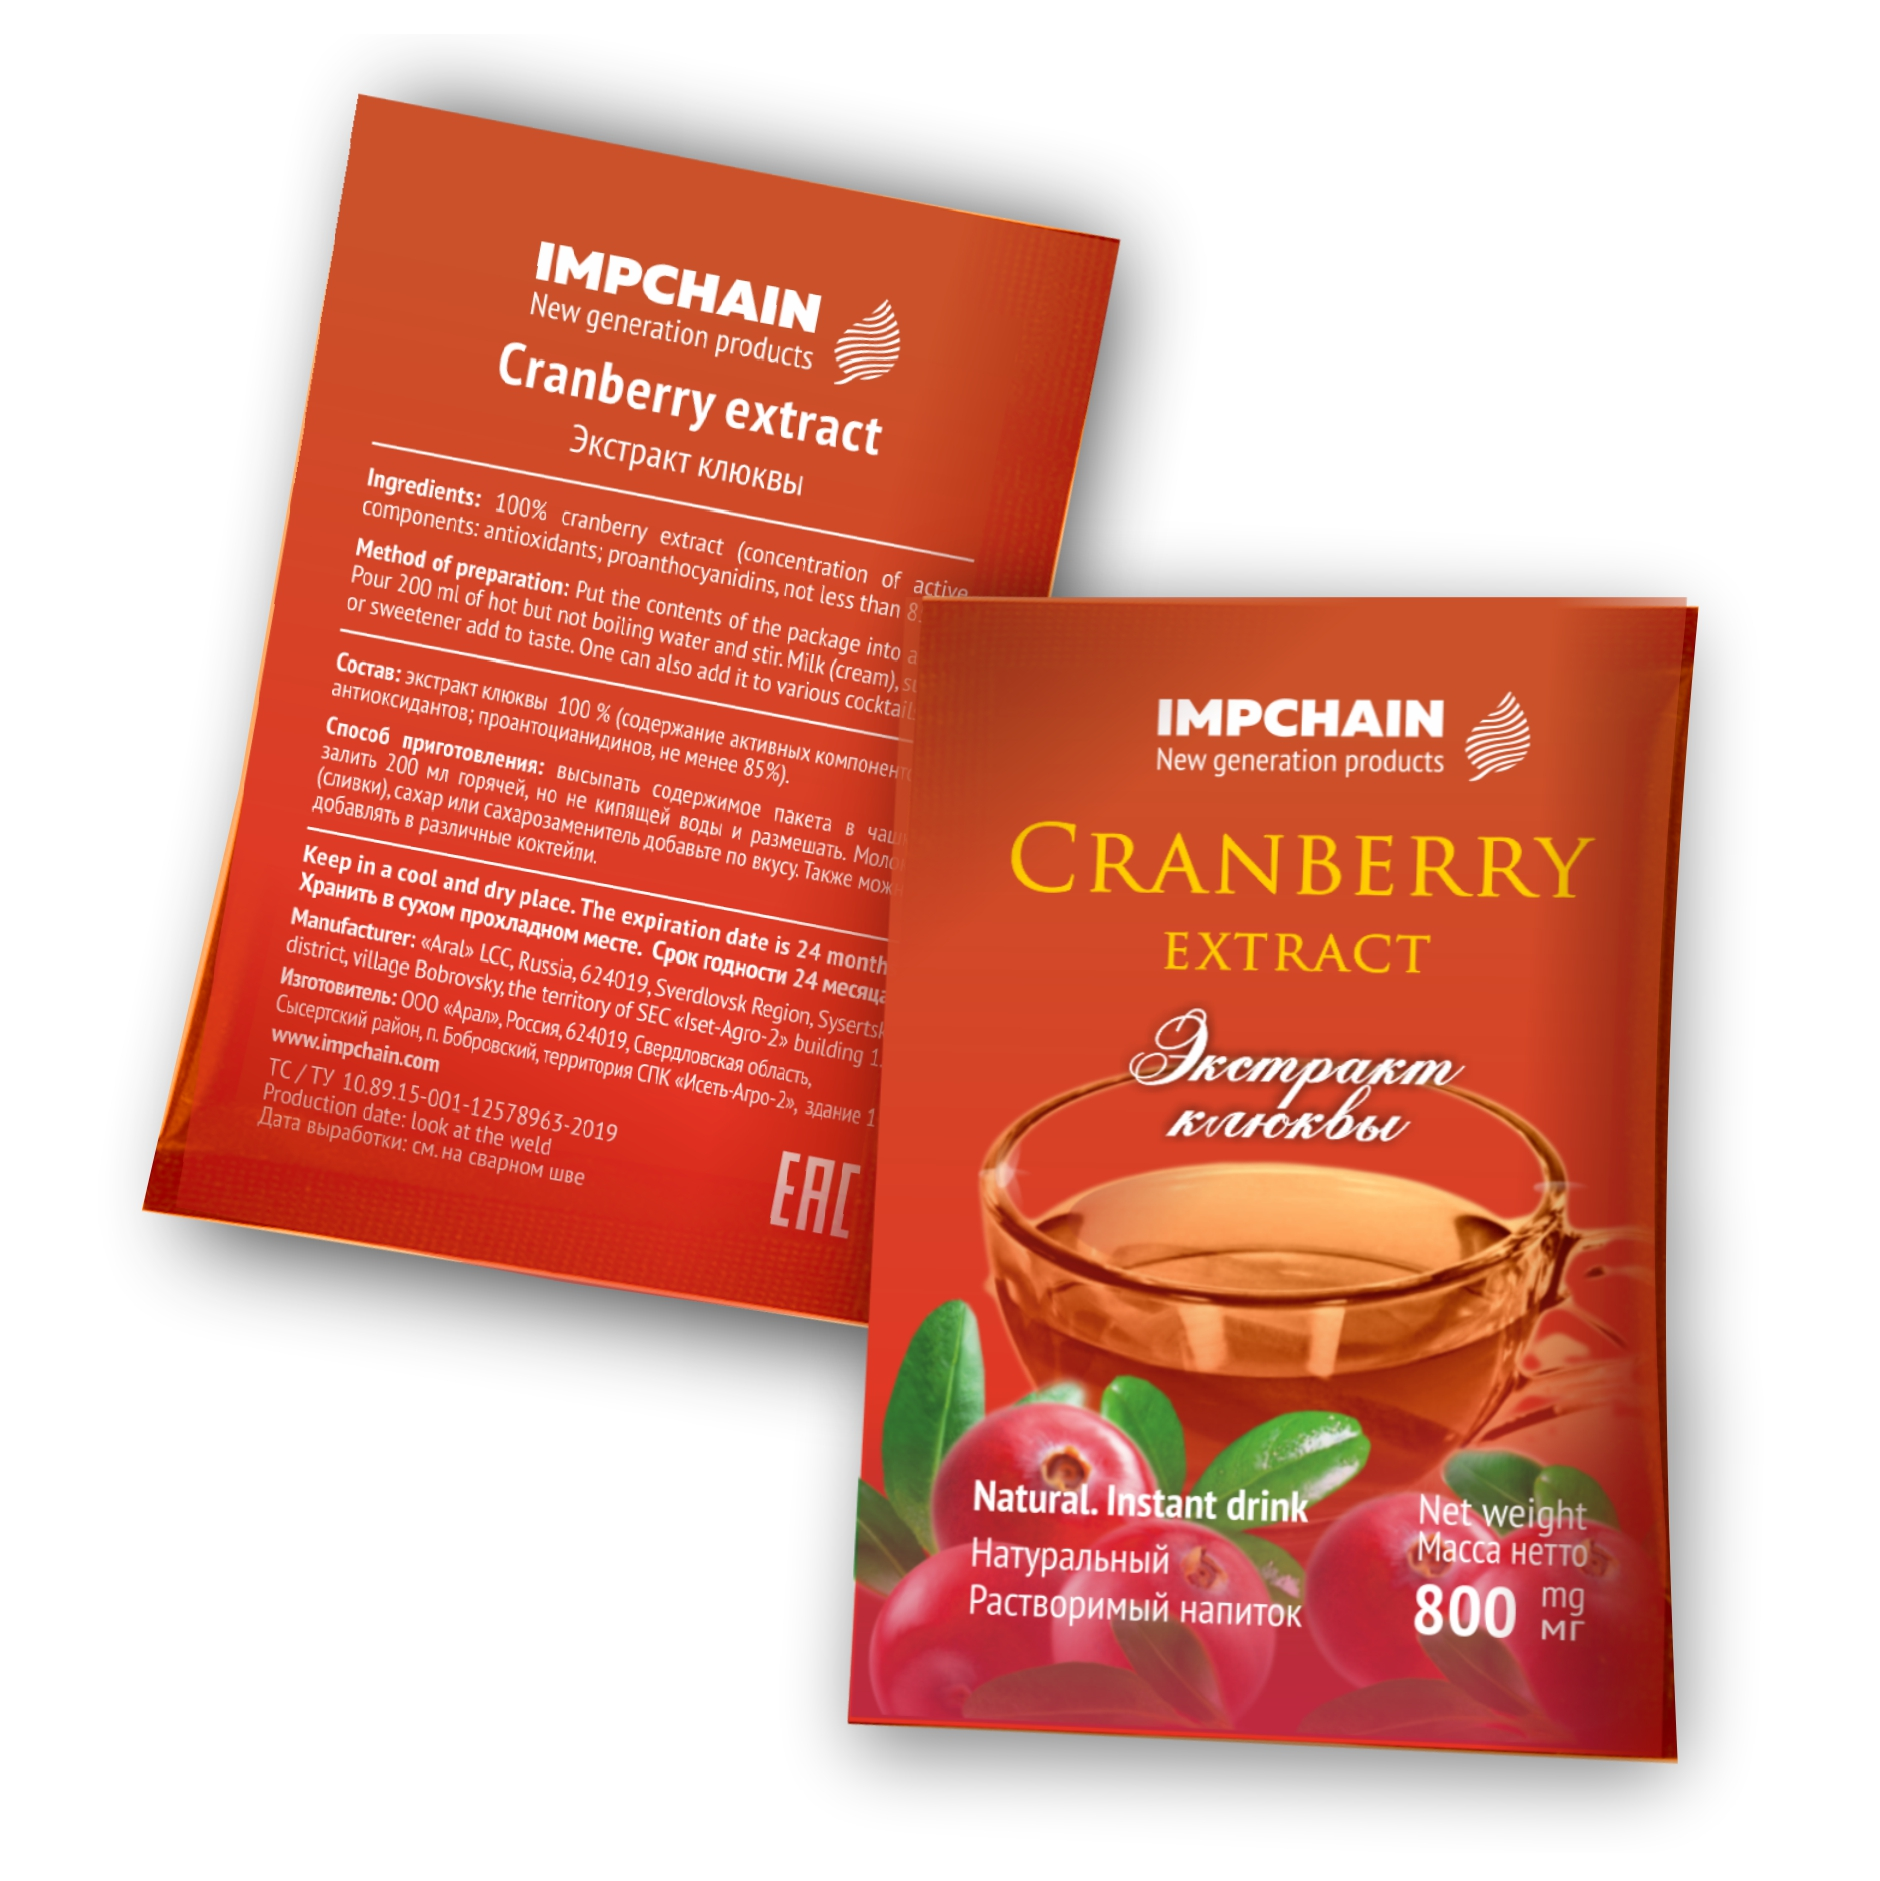 Cranberry extract. Instant drink. The price is indicated for the 1st package. The price of a bag is 20 rubles.